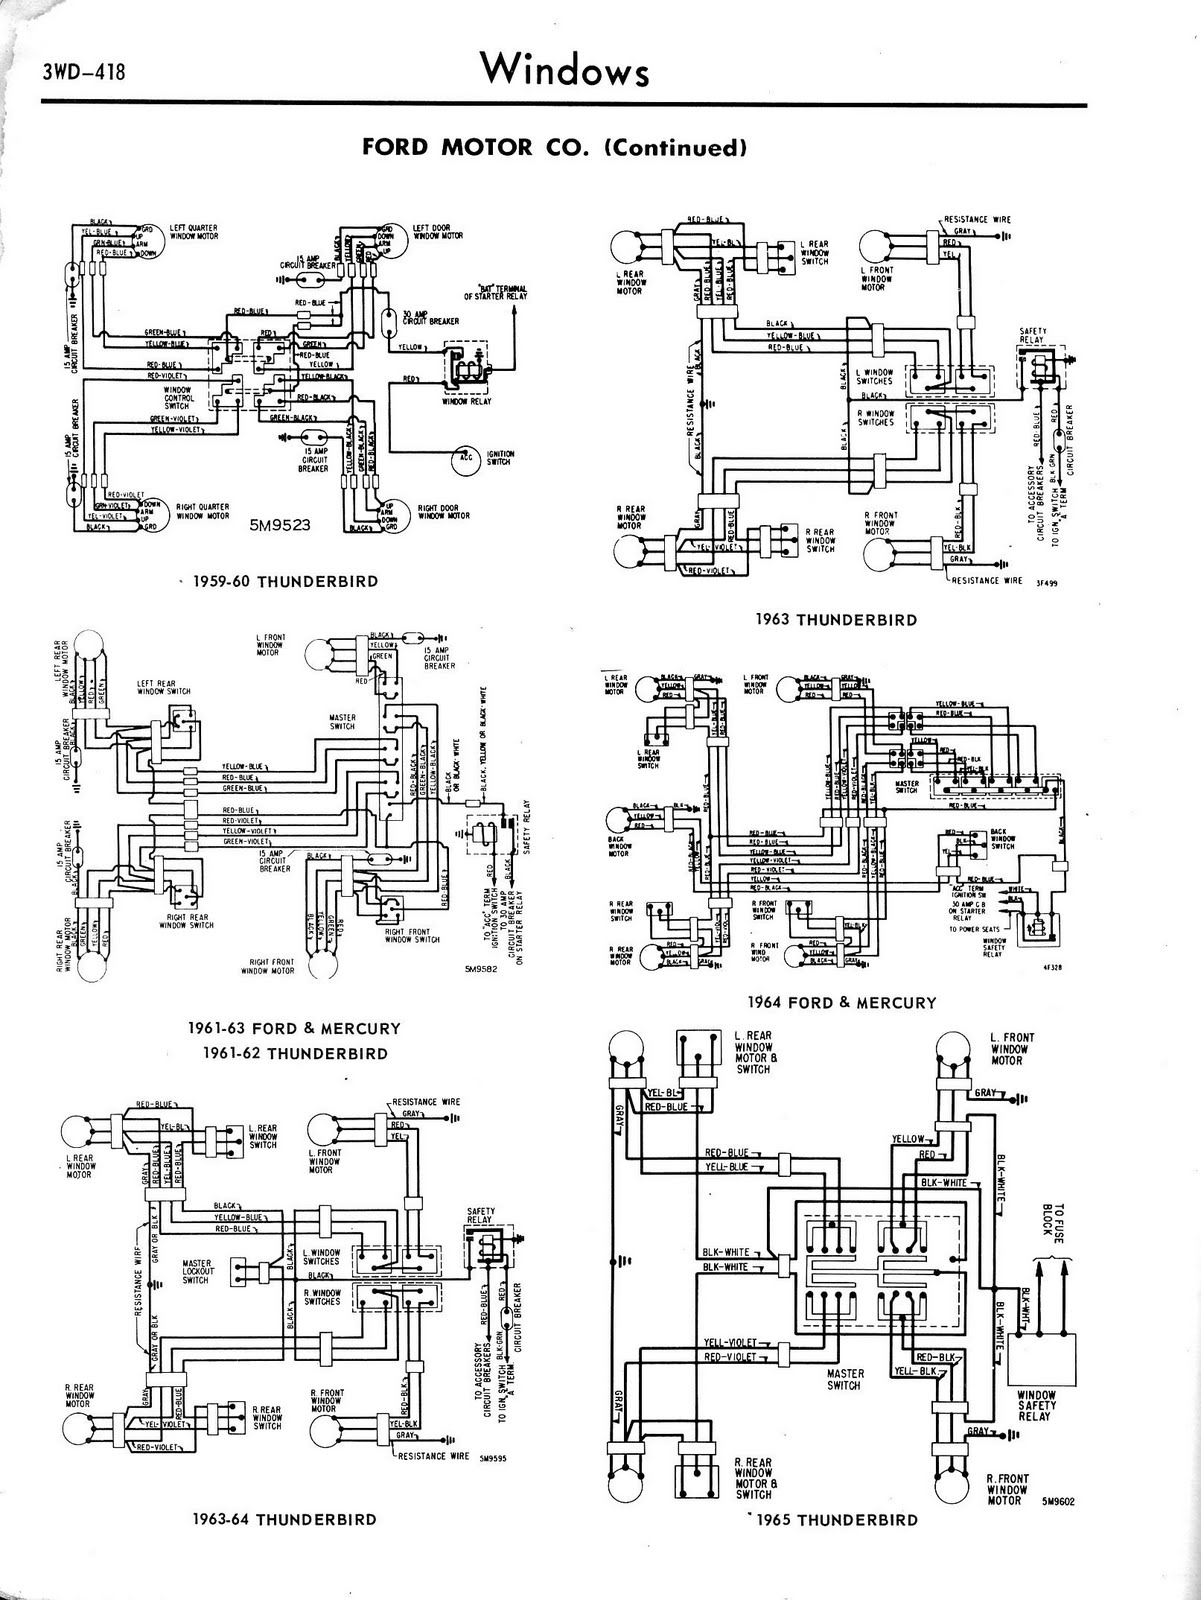 Toyota Pickup Fuse Box Diagram Electric Windows Worksheet And Corolla 2003 Radio 1964 Thunderbird Panel Schematics Wiring Diagrams U2022 Rh Parntesis Co